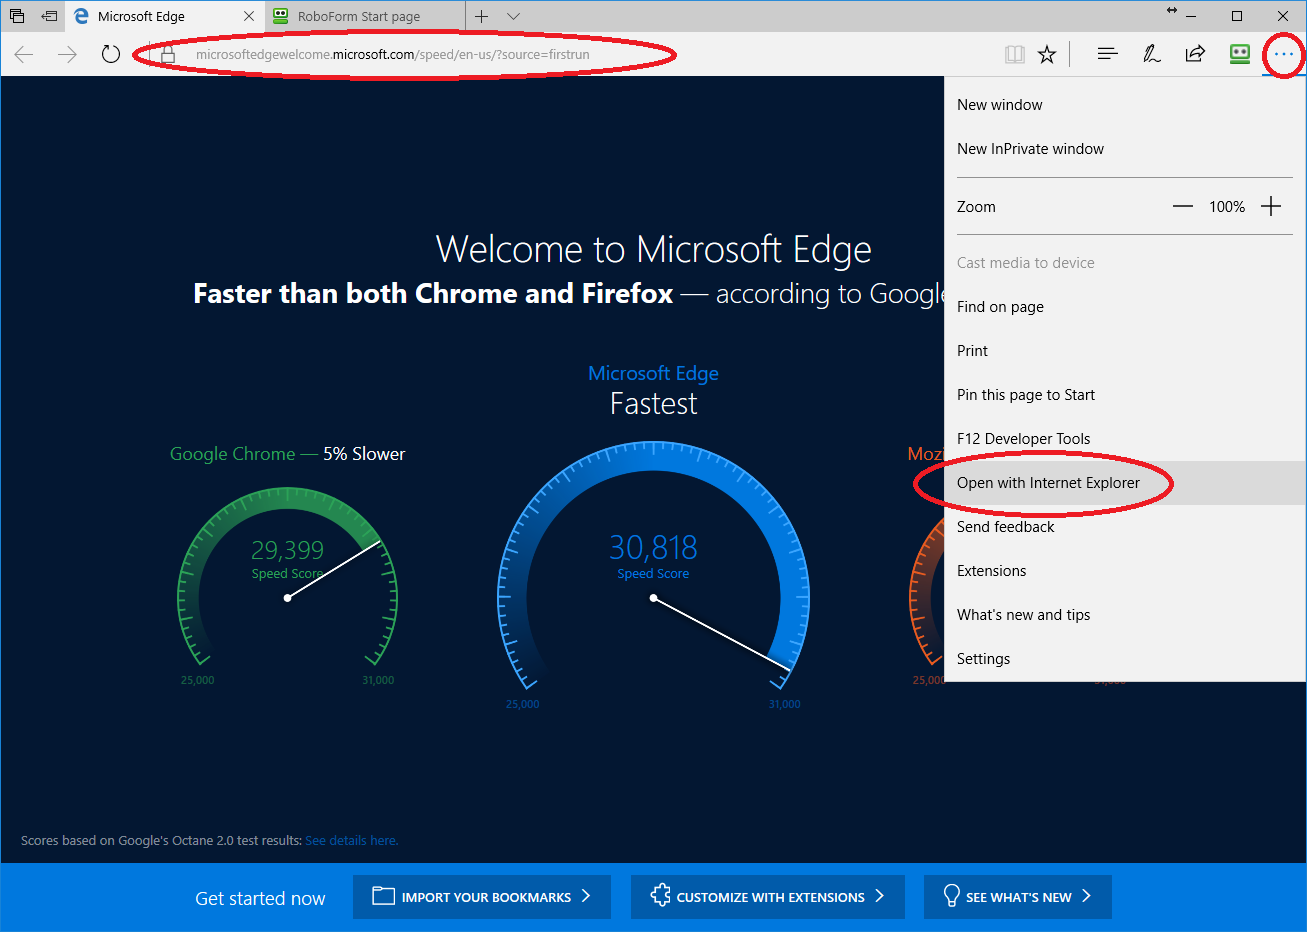 How to access Internet Explorer through Edge – RoboForm